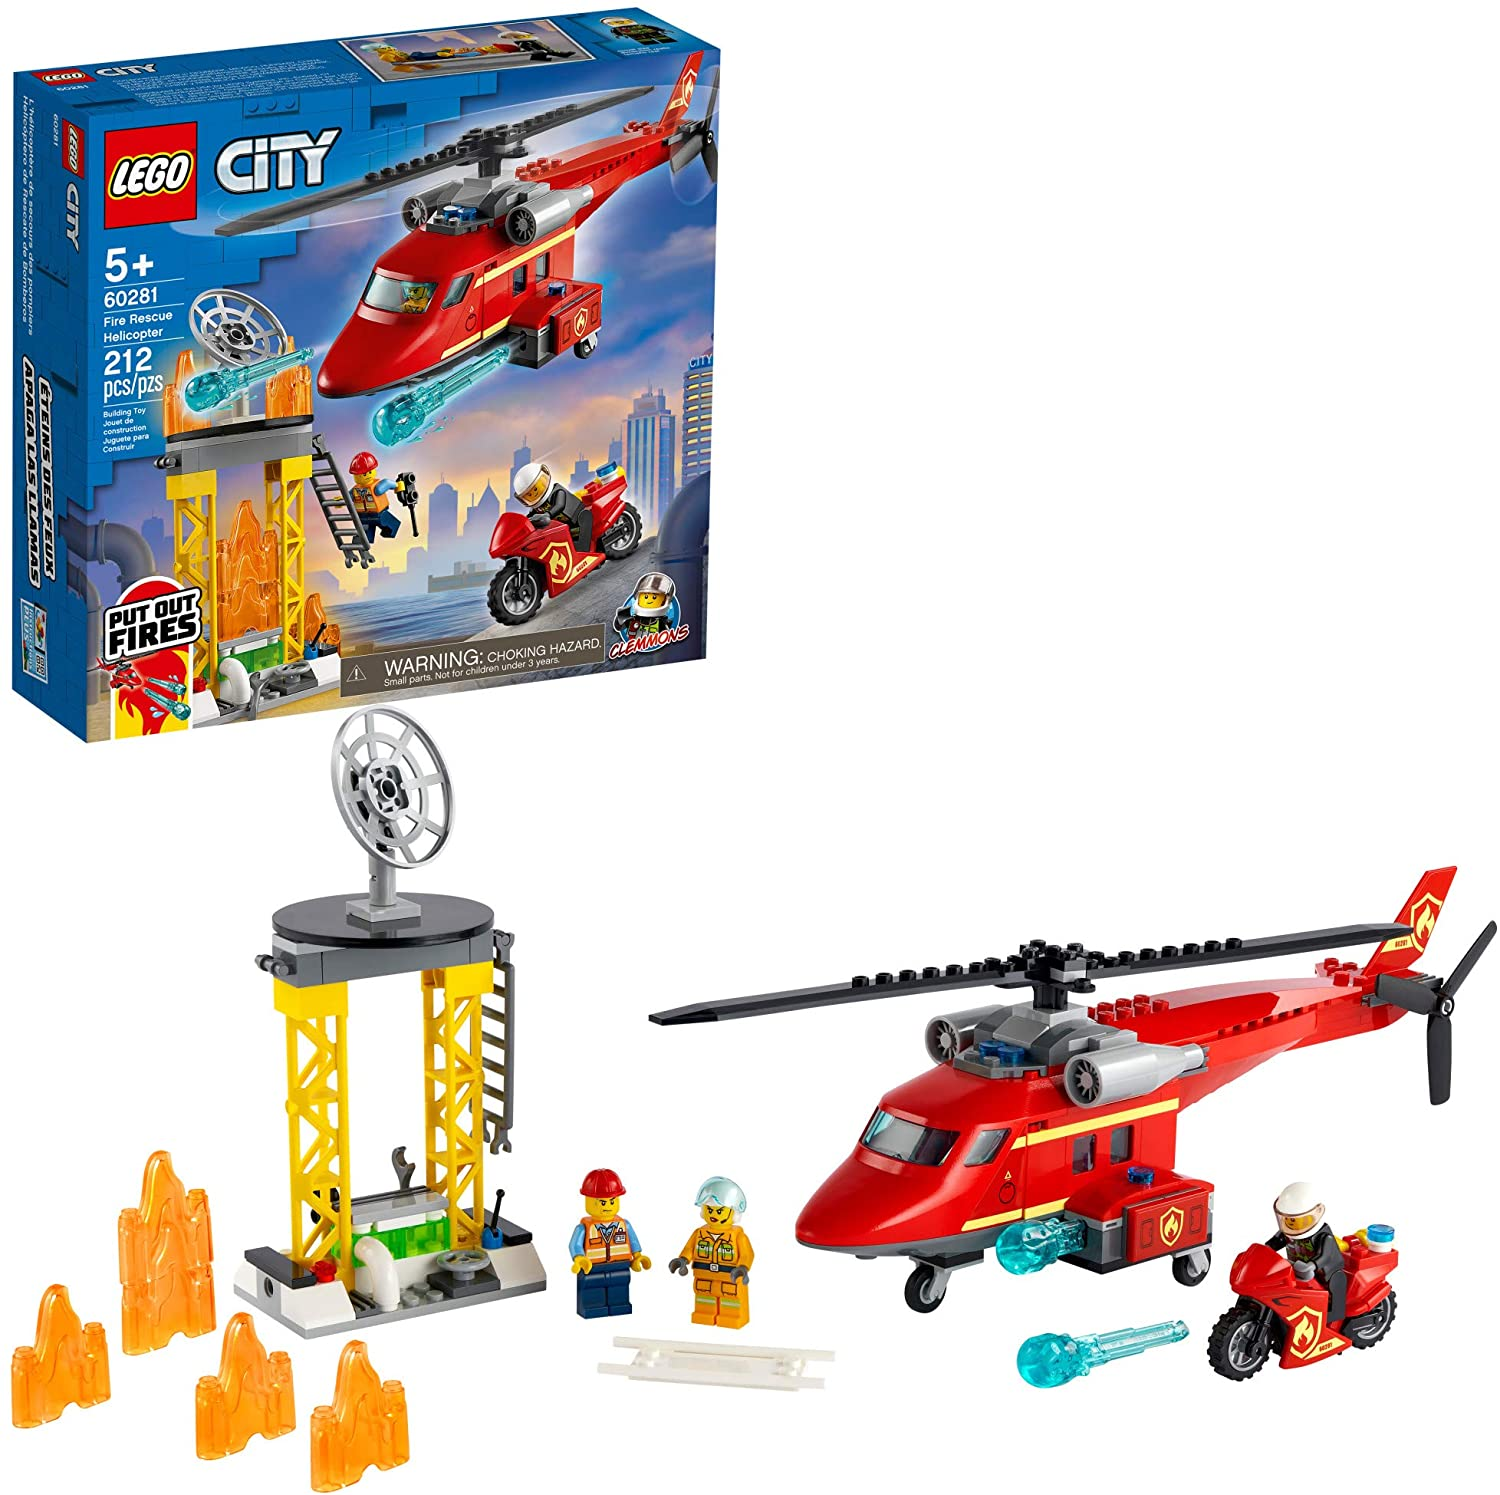 LEGO City 60281 Fire Rescue Helicopter, New 2021 (212 Pieces)